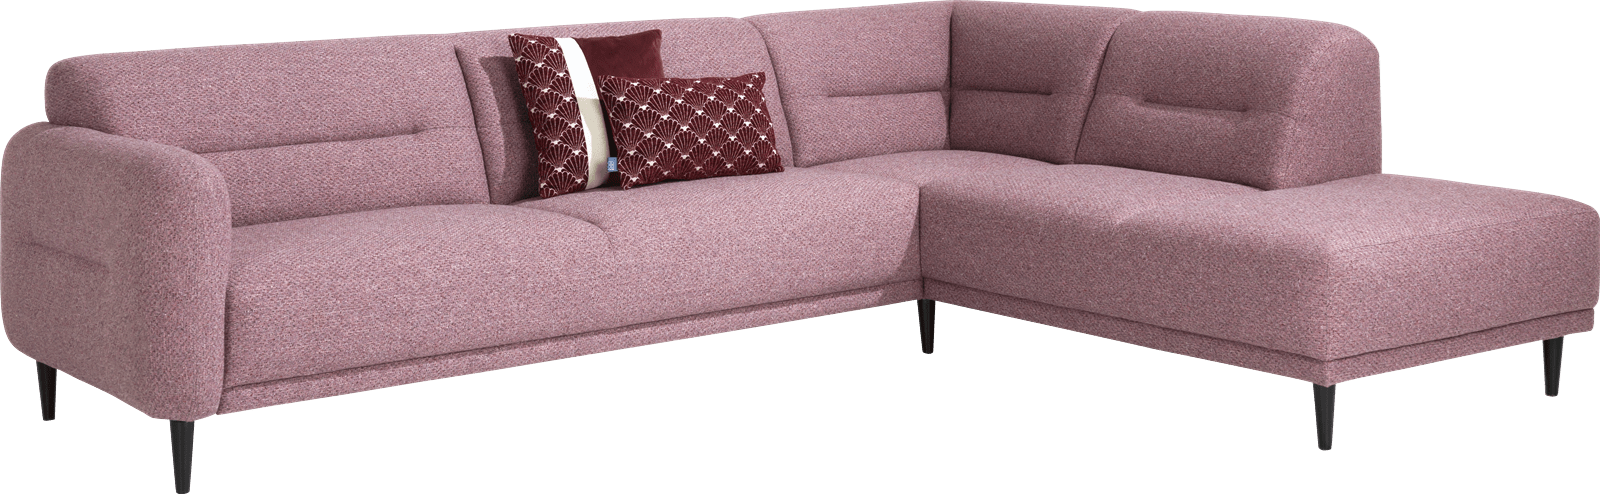 XOOON - Halifax - Skandinavisches Design - Sofas - 2.5-sitzer armlehne links